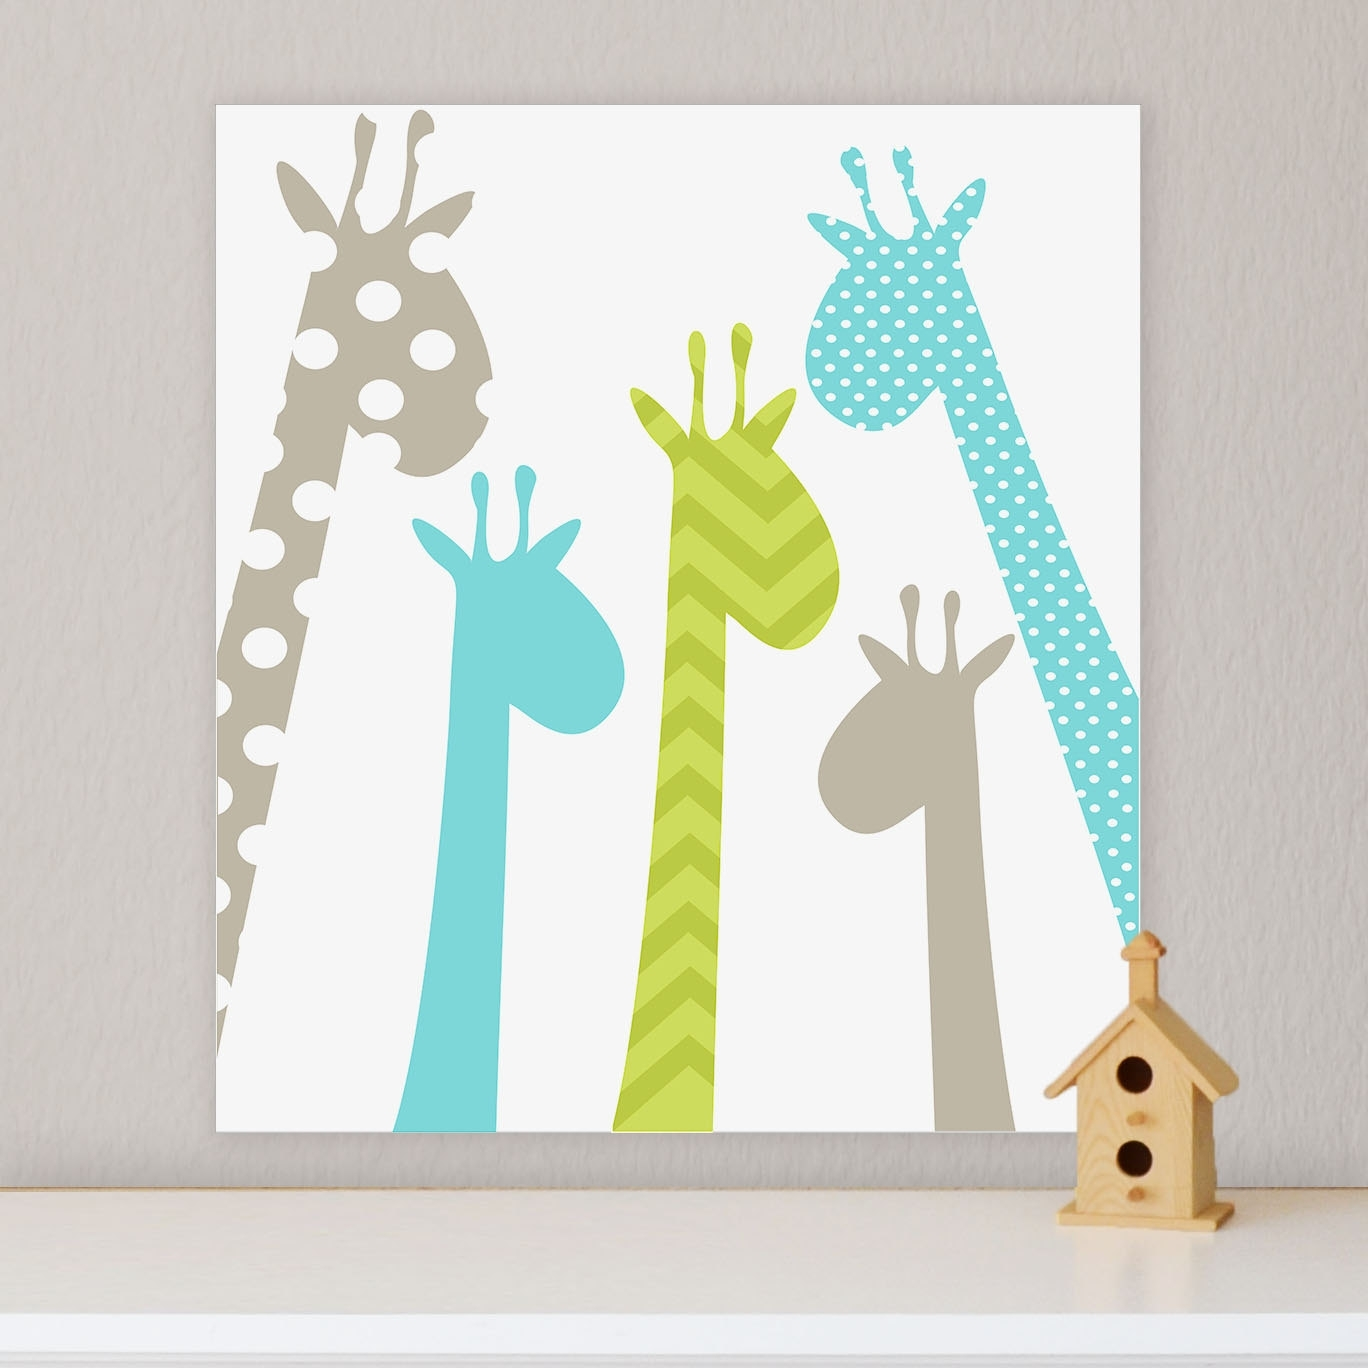 Canvas Wall Art For Kids Rooms – Dronemploy #00C8F2Ef646C In Most Popular Giraffe Canvas Wall Art (View 4 of 15)